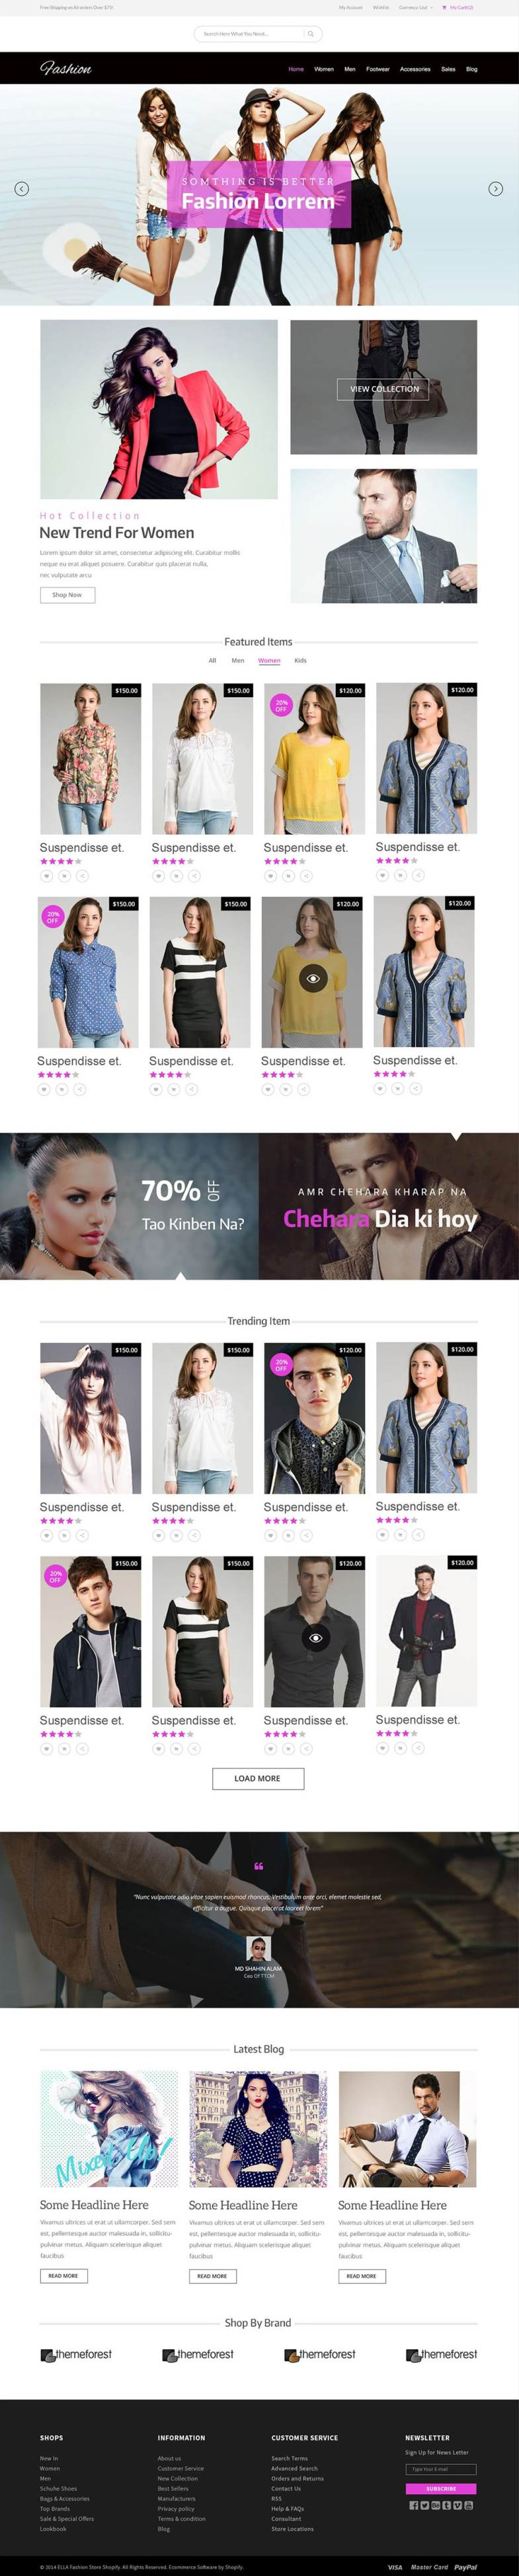 E commerce Fashion Template PSD